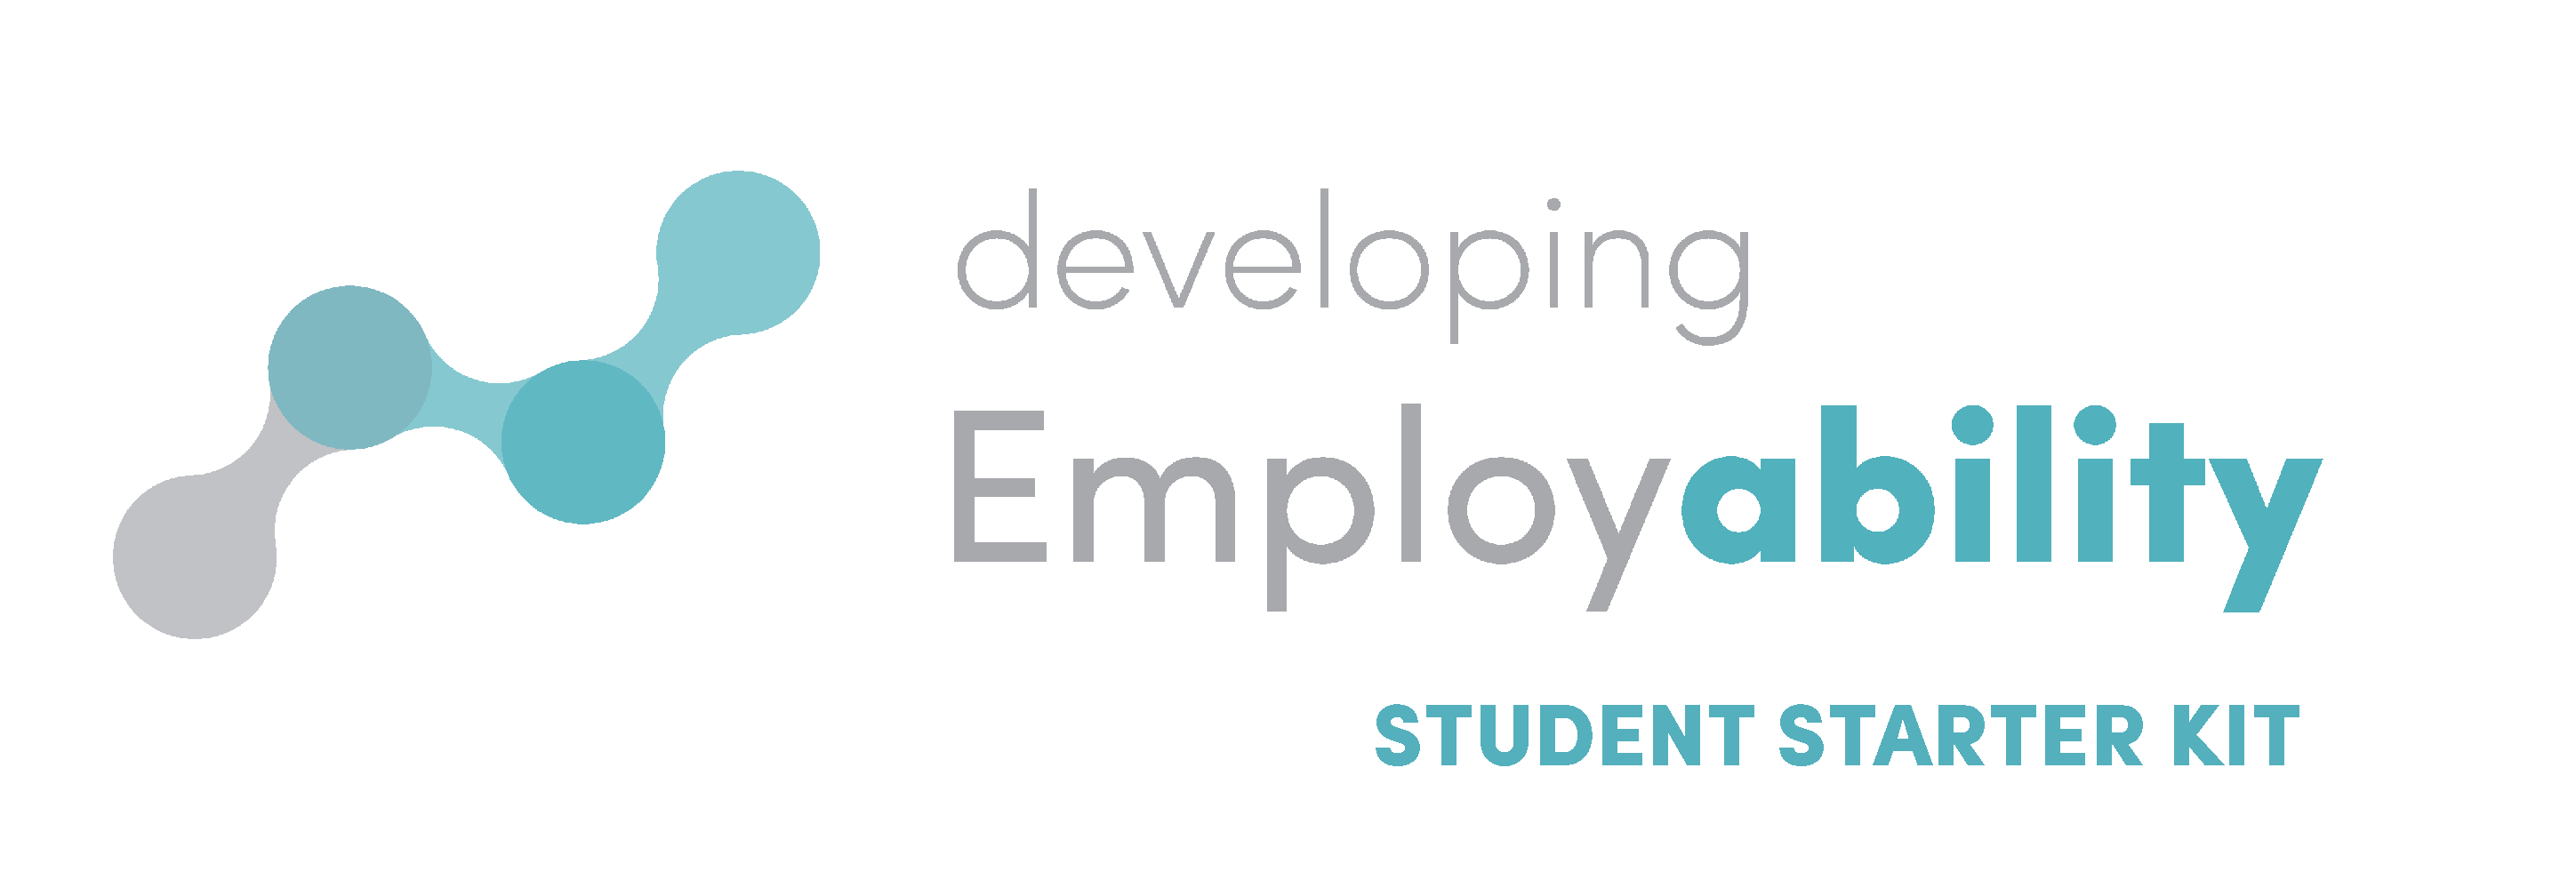 developing employability logo